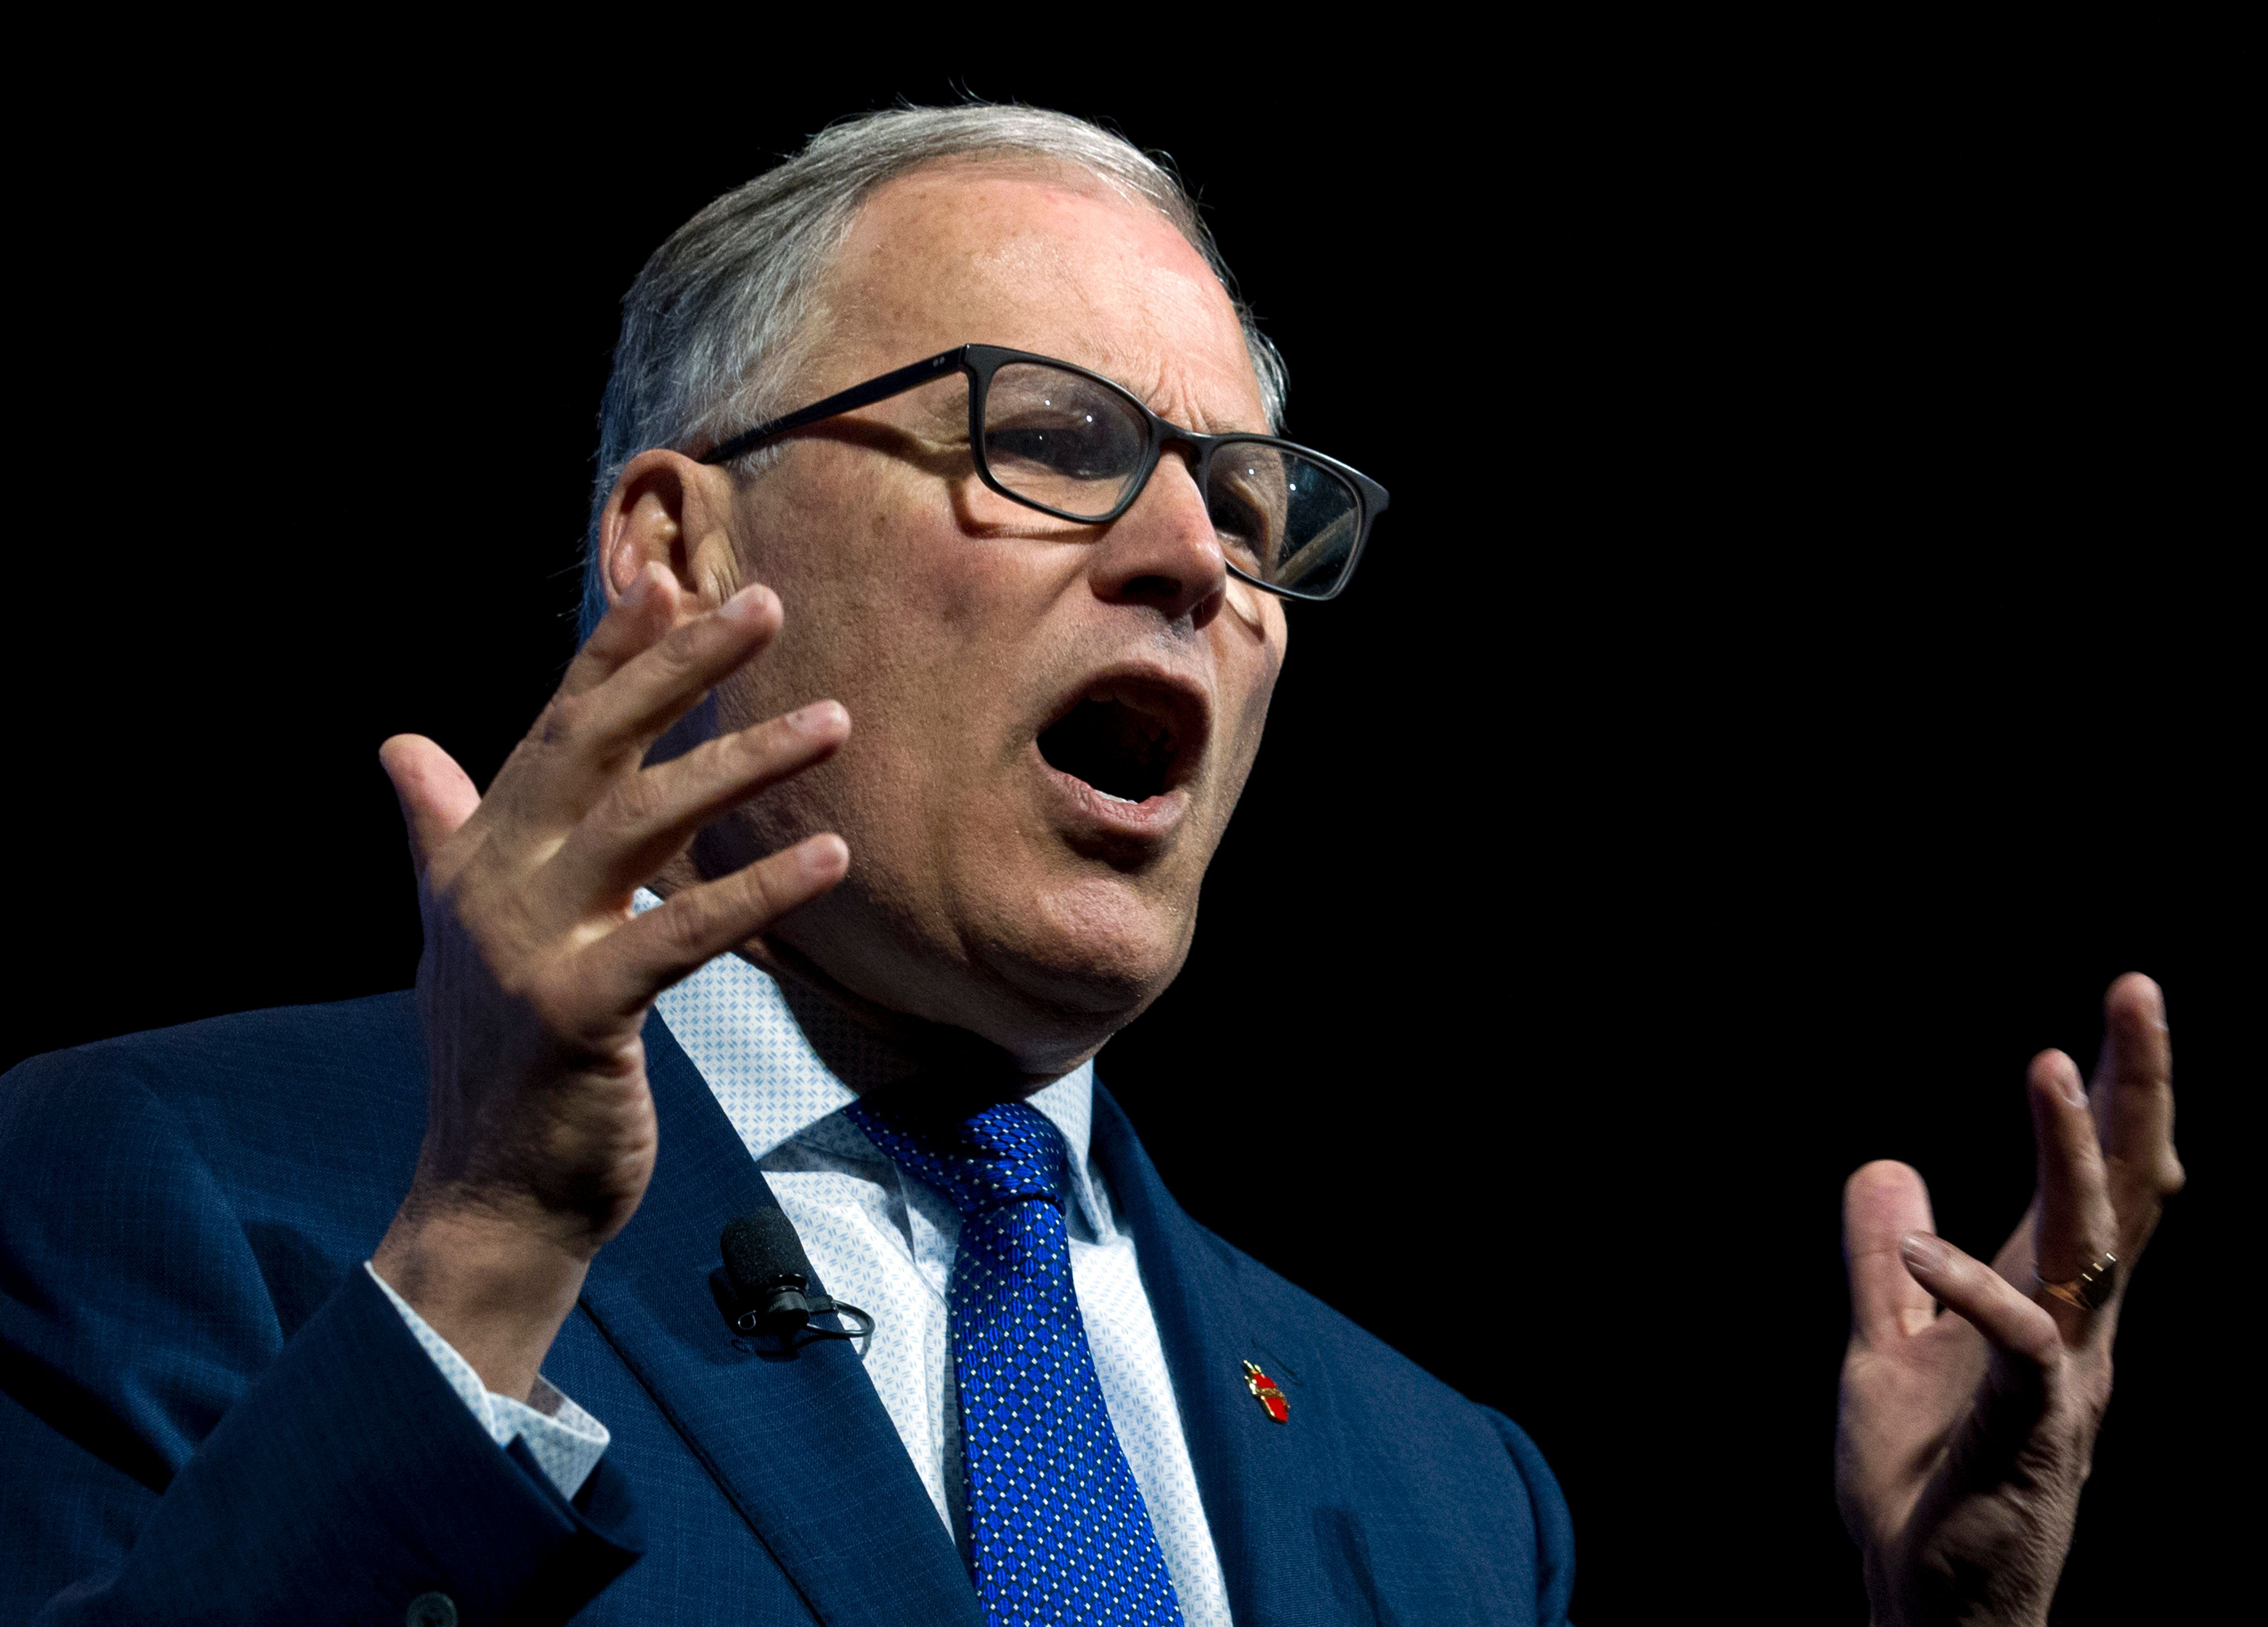 Democratic presidential candidate Washington Gov. Jay Inslee speaks during the We the People Membership Summit, featuring the 2020 Democratic presidential candidates, at the Warner Theater, in Washington, Monday, April 1, 2019. (AP Photo/Jose Luis Magana)